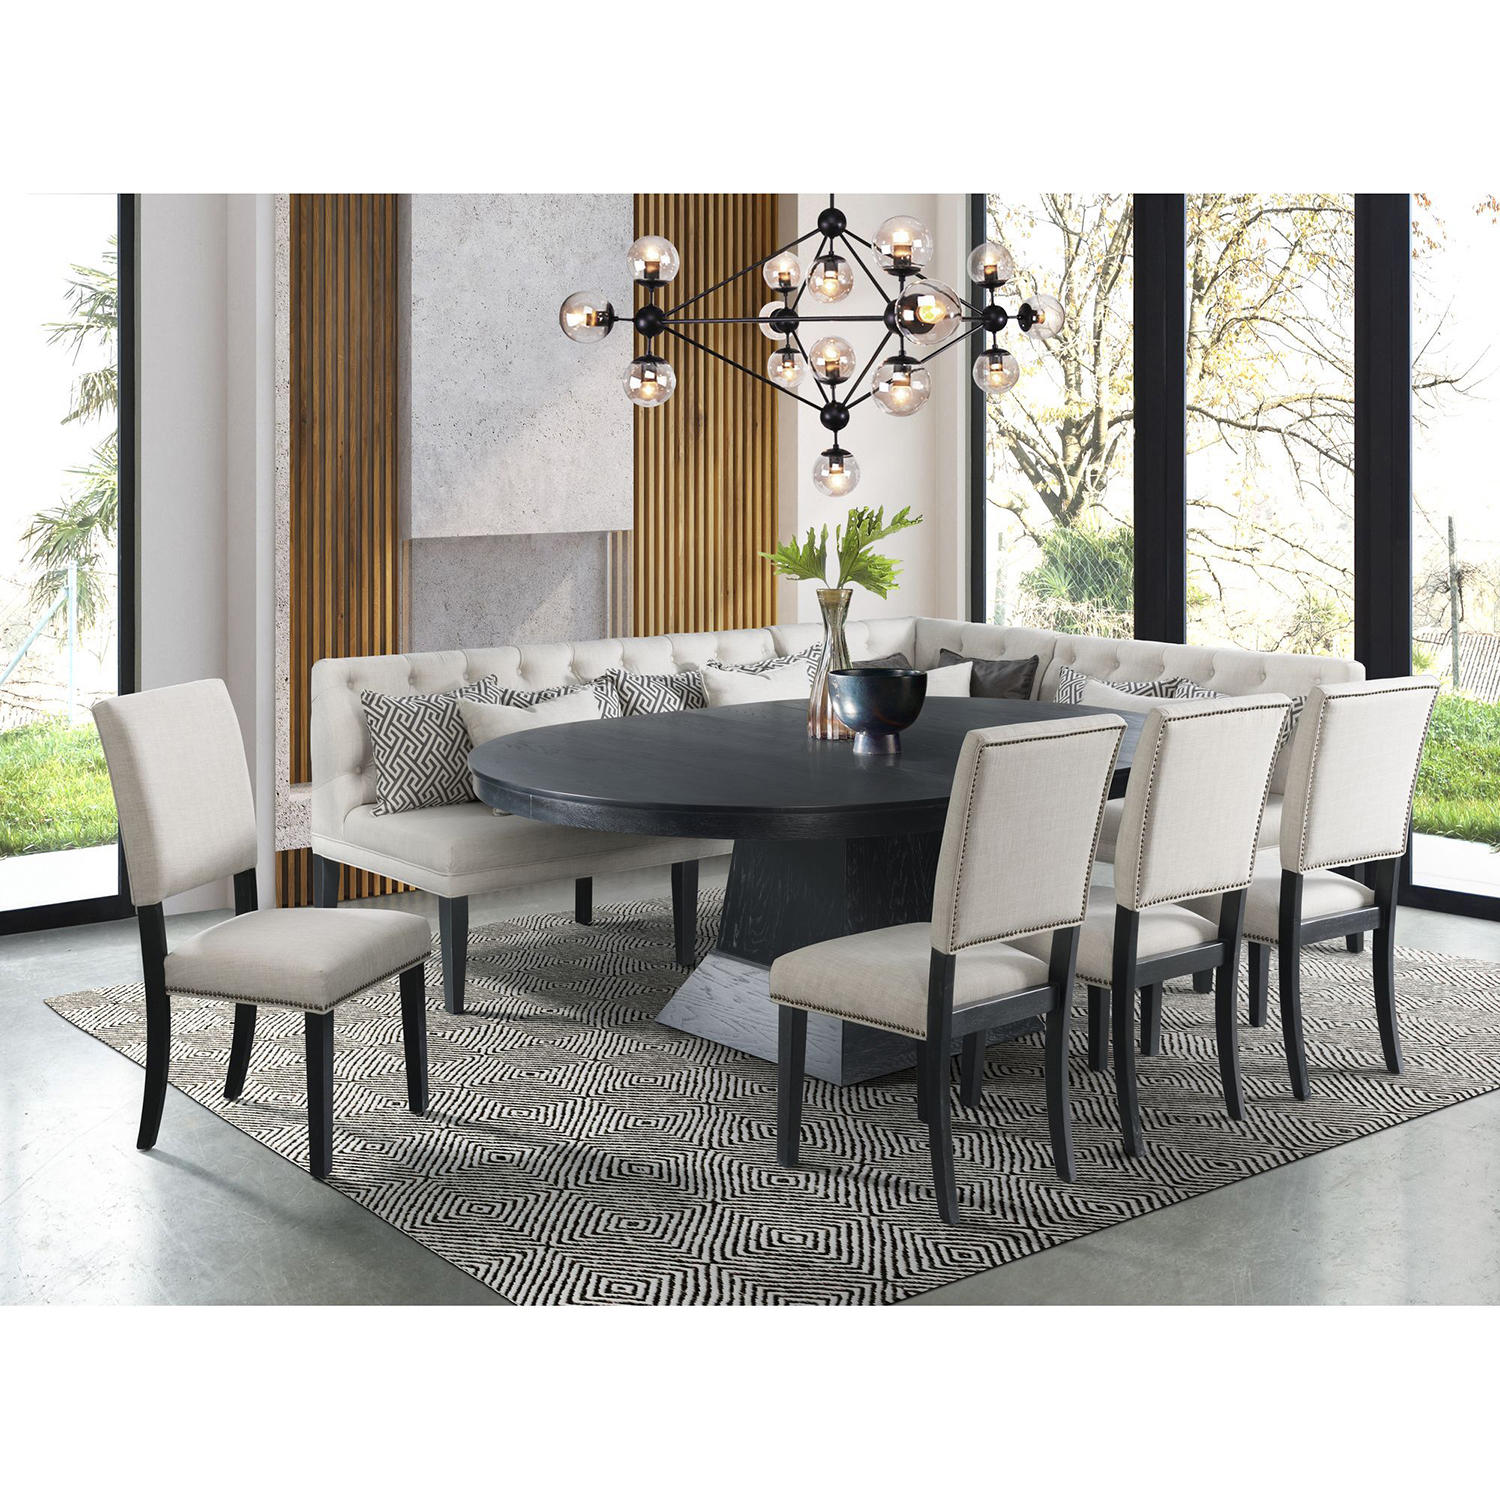 Society Den Mara 8-Piece Oval Dining Set